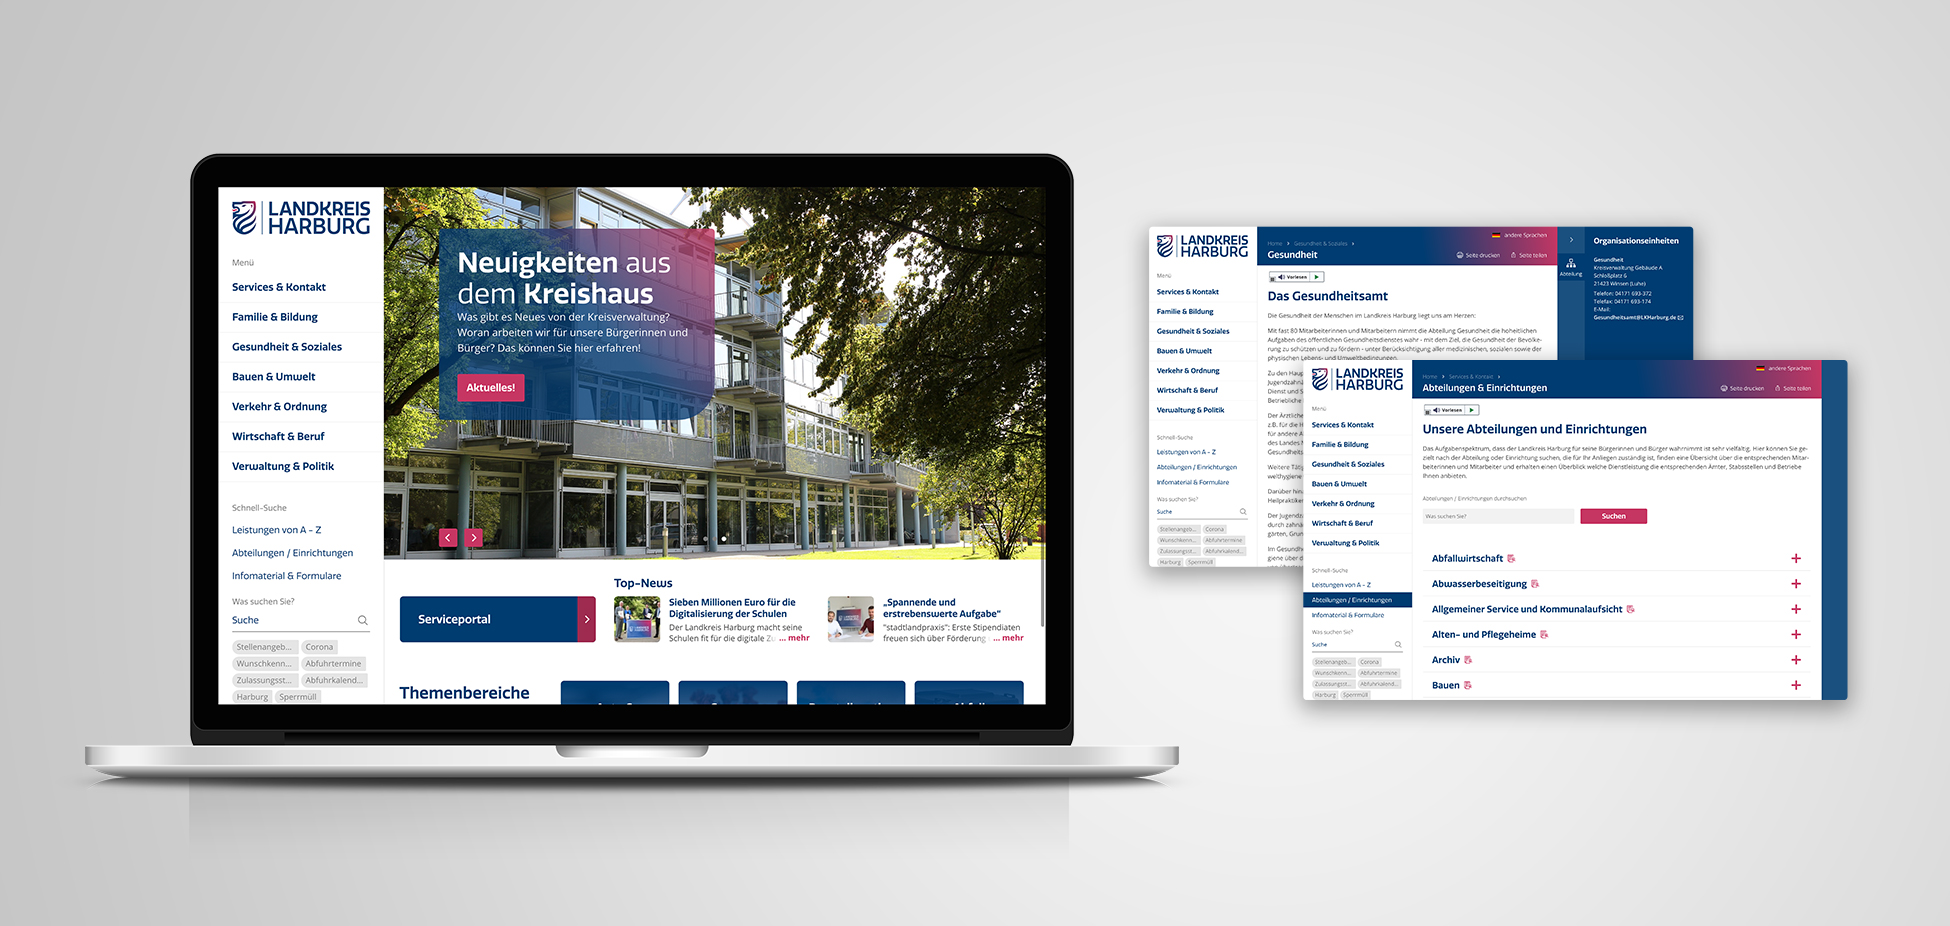 B2B-Marken-Relaunch | Case Study LKH | Website Design